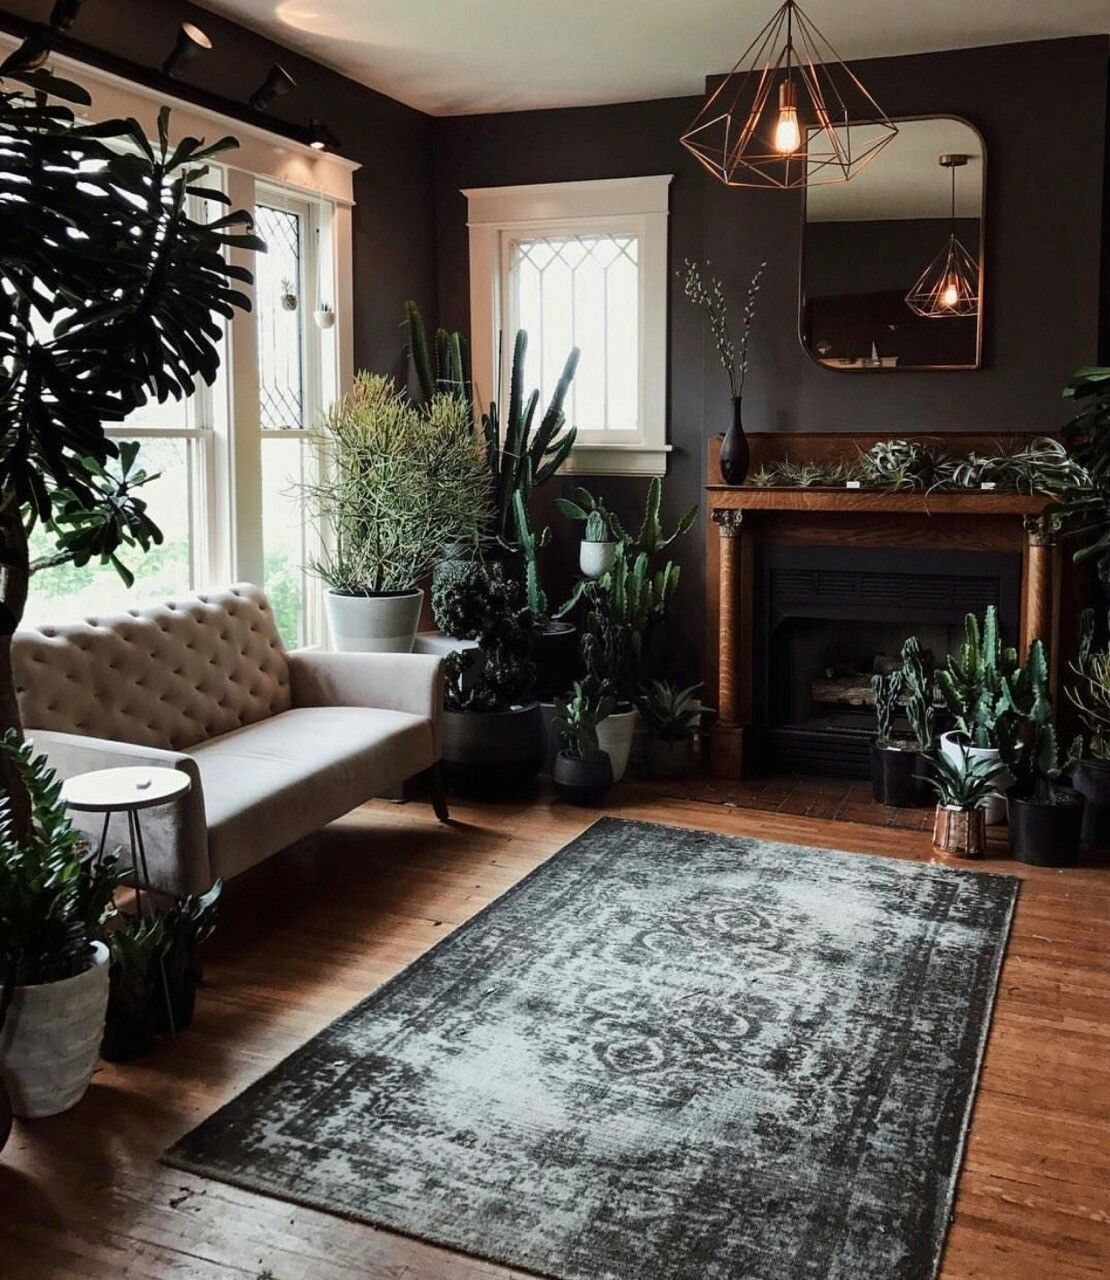 Big Plants For Living Room Plants Living Room Dark Moody Style Colors Color Palette